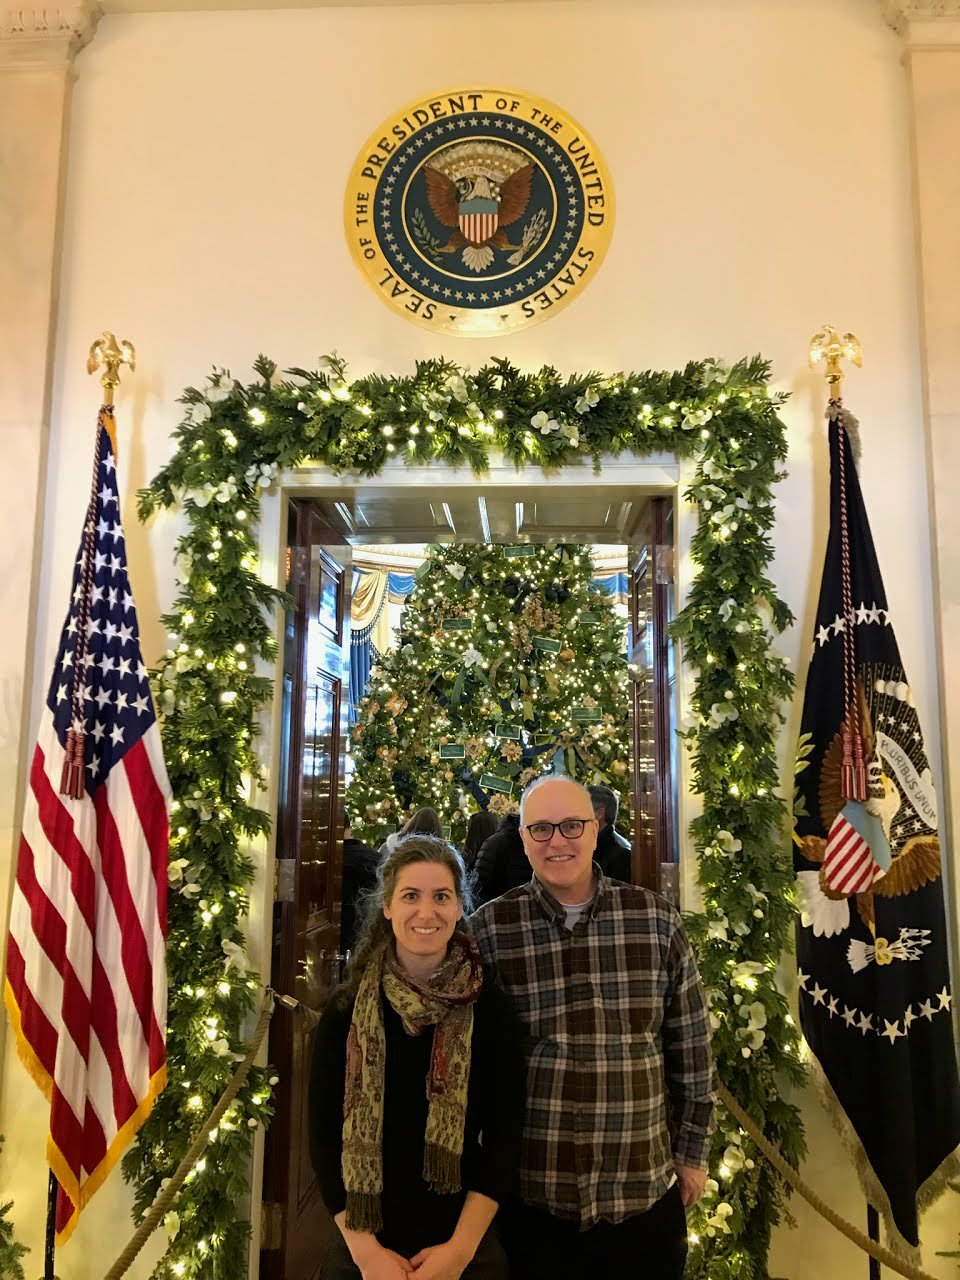 Kristin and Ricky standing under the White House Seal